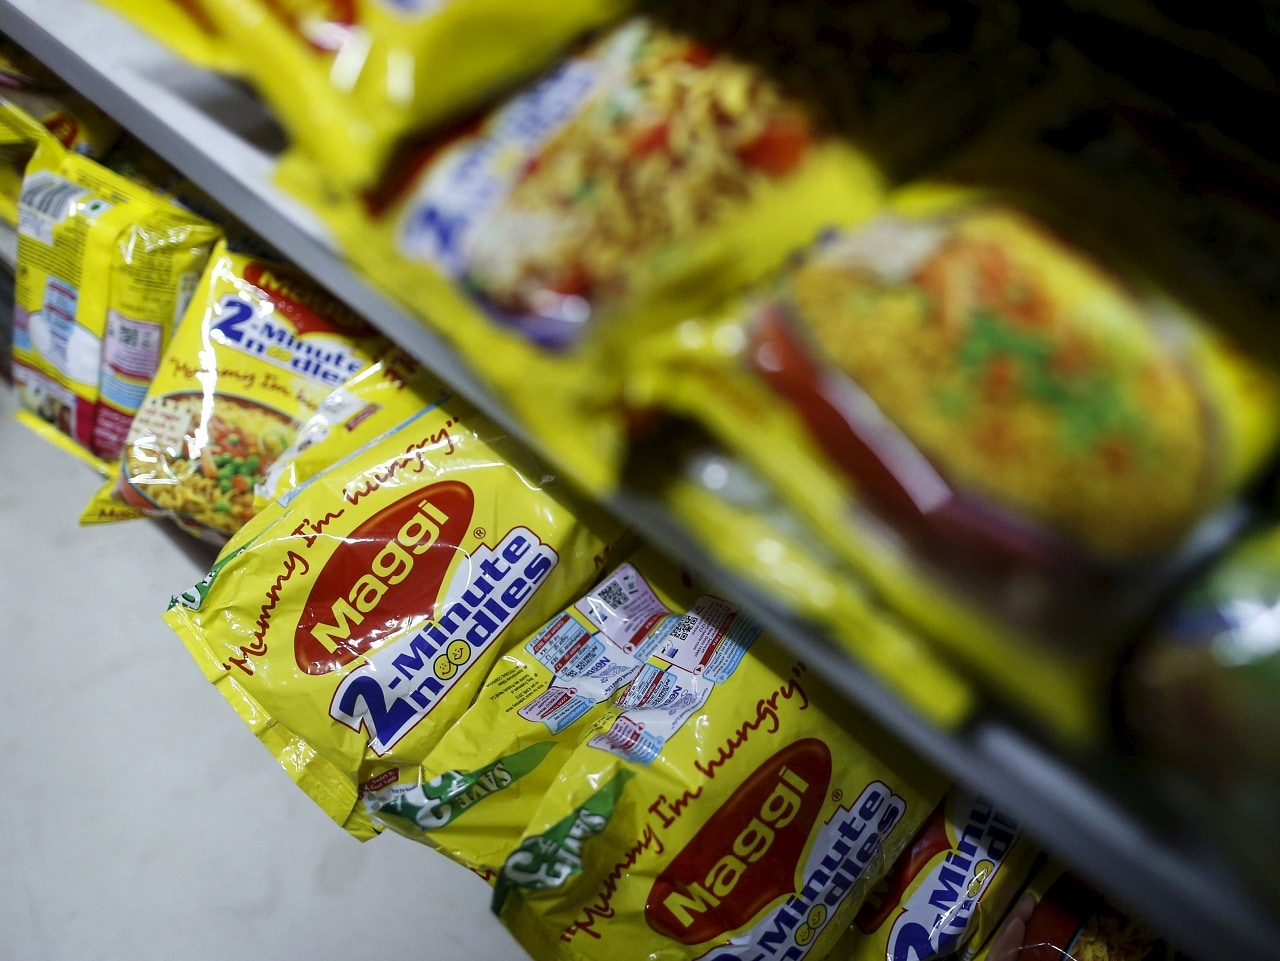 Nestle's stock price rose 2.97 percent to hit its 52-week high of Rs 12,890 per share on Thursday. (Image: Reuters)